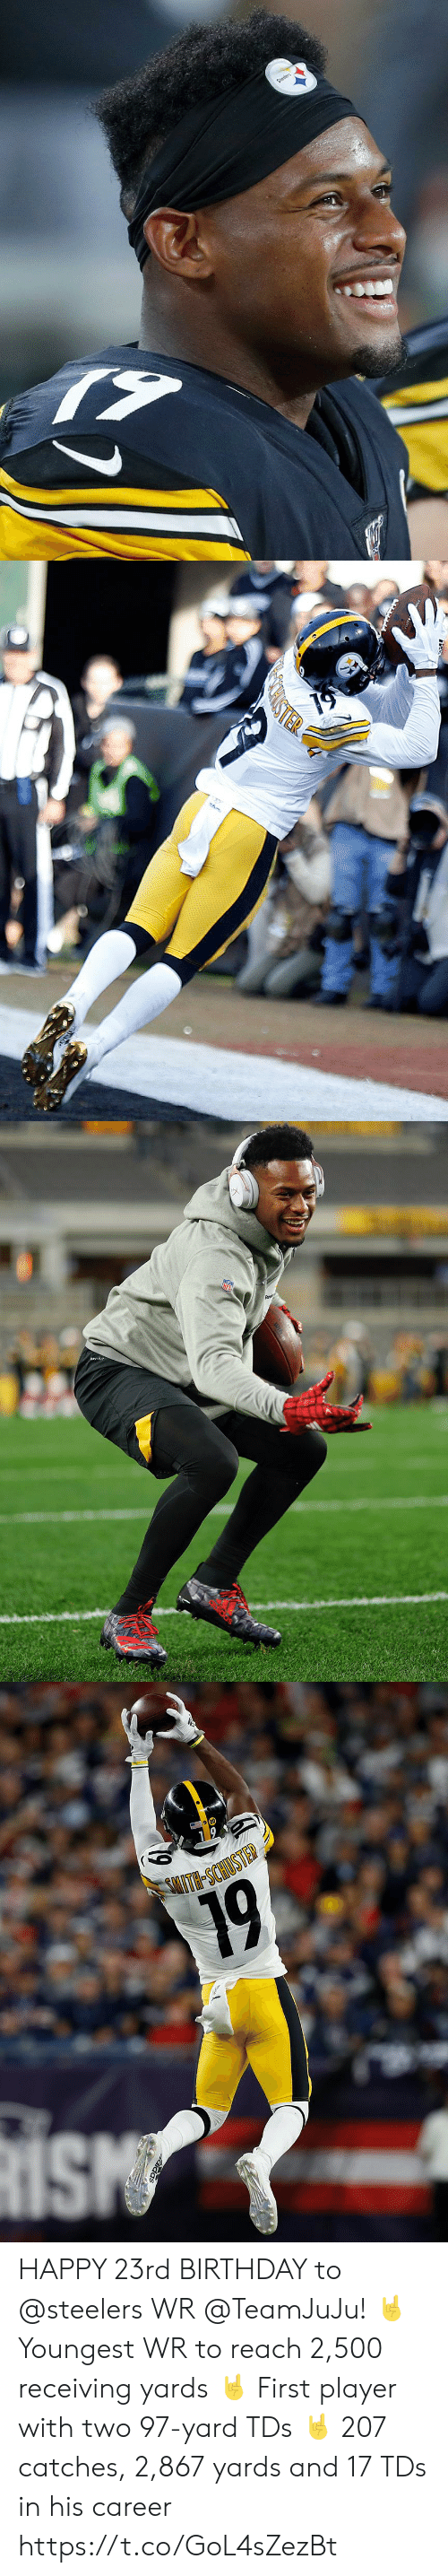 Sith: Steelers   TER   DR-FIT   SITH-SCHIOSTED  19 HAPPY 23rd BIRTHDAY to @steelers WR @TeamJuJu! 🤘 Youngest WR to reach 2,500 receiving yards 🤘 First player with two 97-yard TDs 🤘 207 catches, 2,867 yards and 17 TDs in his career https://t.co/GoL4sZezBt